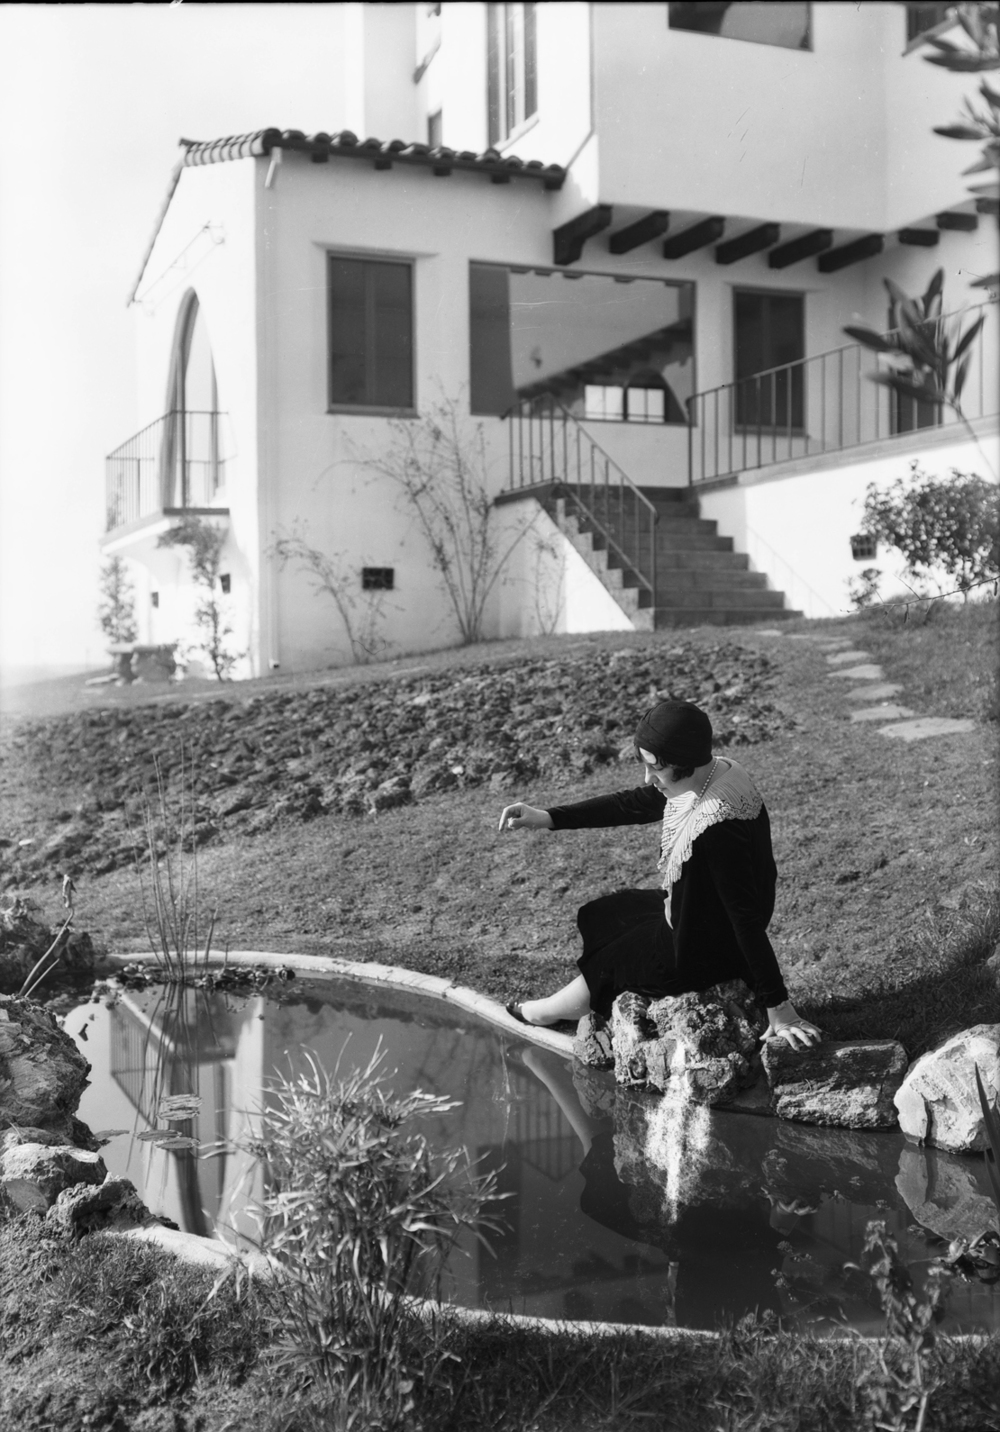 Shots_at_View_Park_Seville_home_Los_Angeles_CA_1930_image_4.jpg